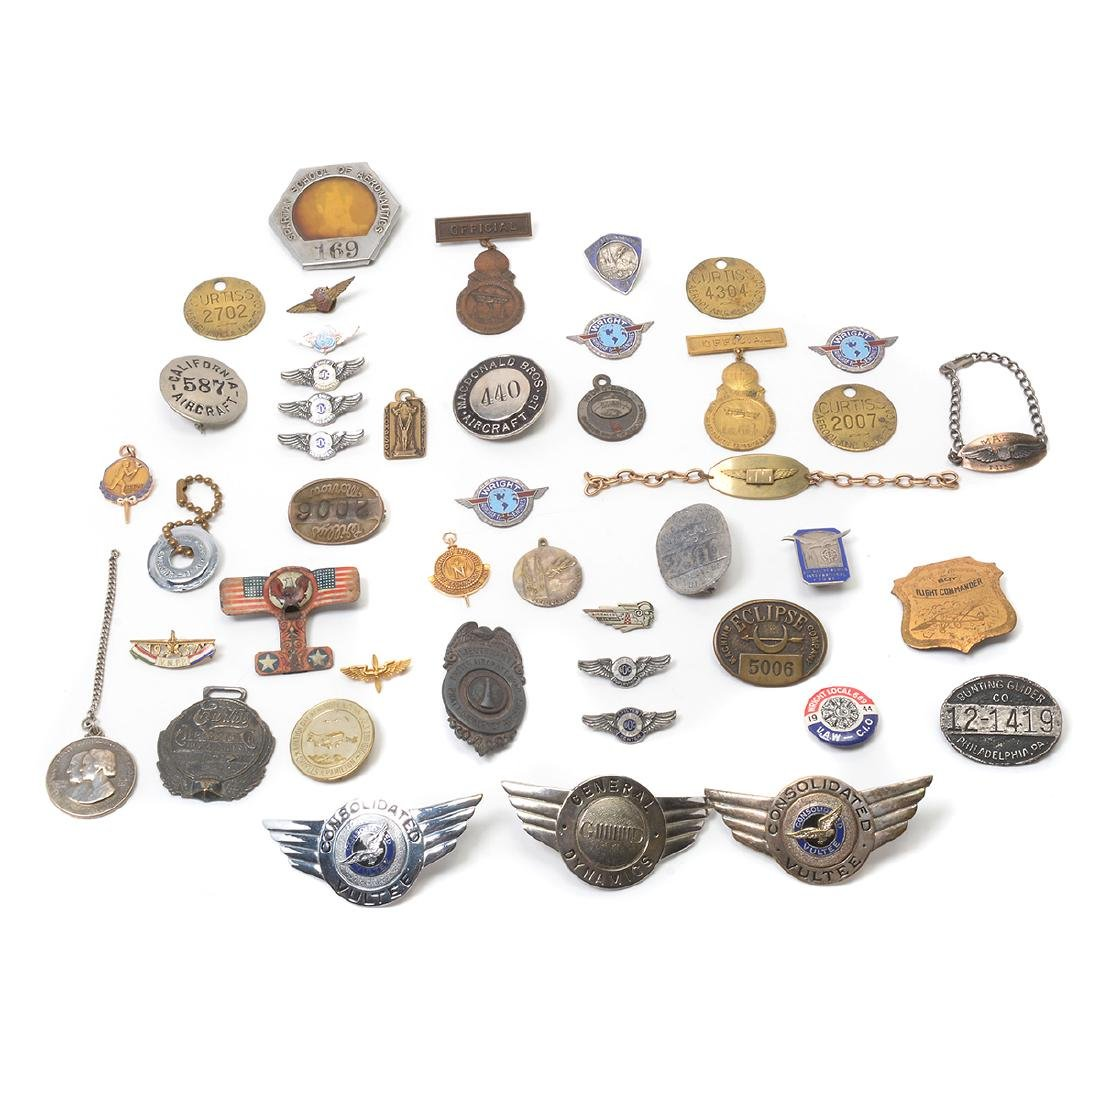 Collection of Aviation Badges, Pins and other